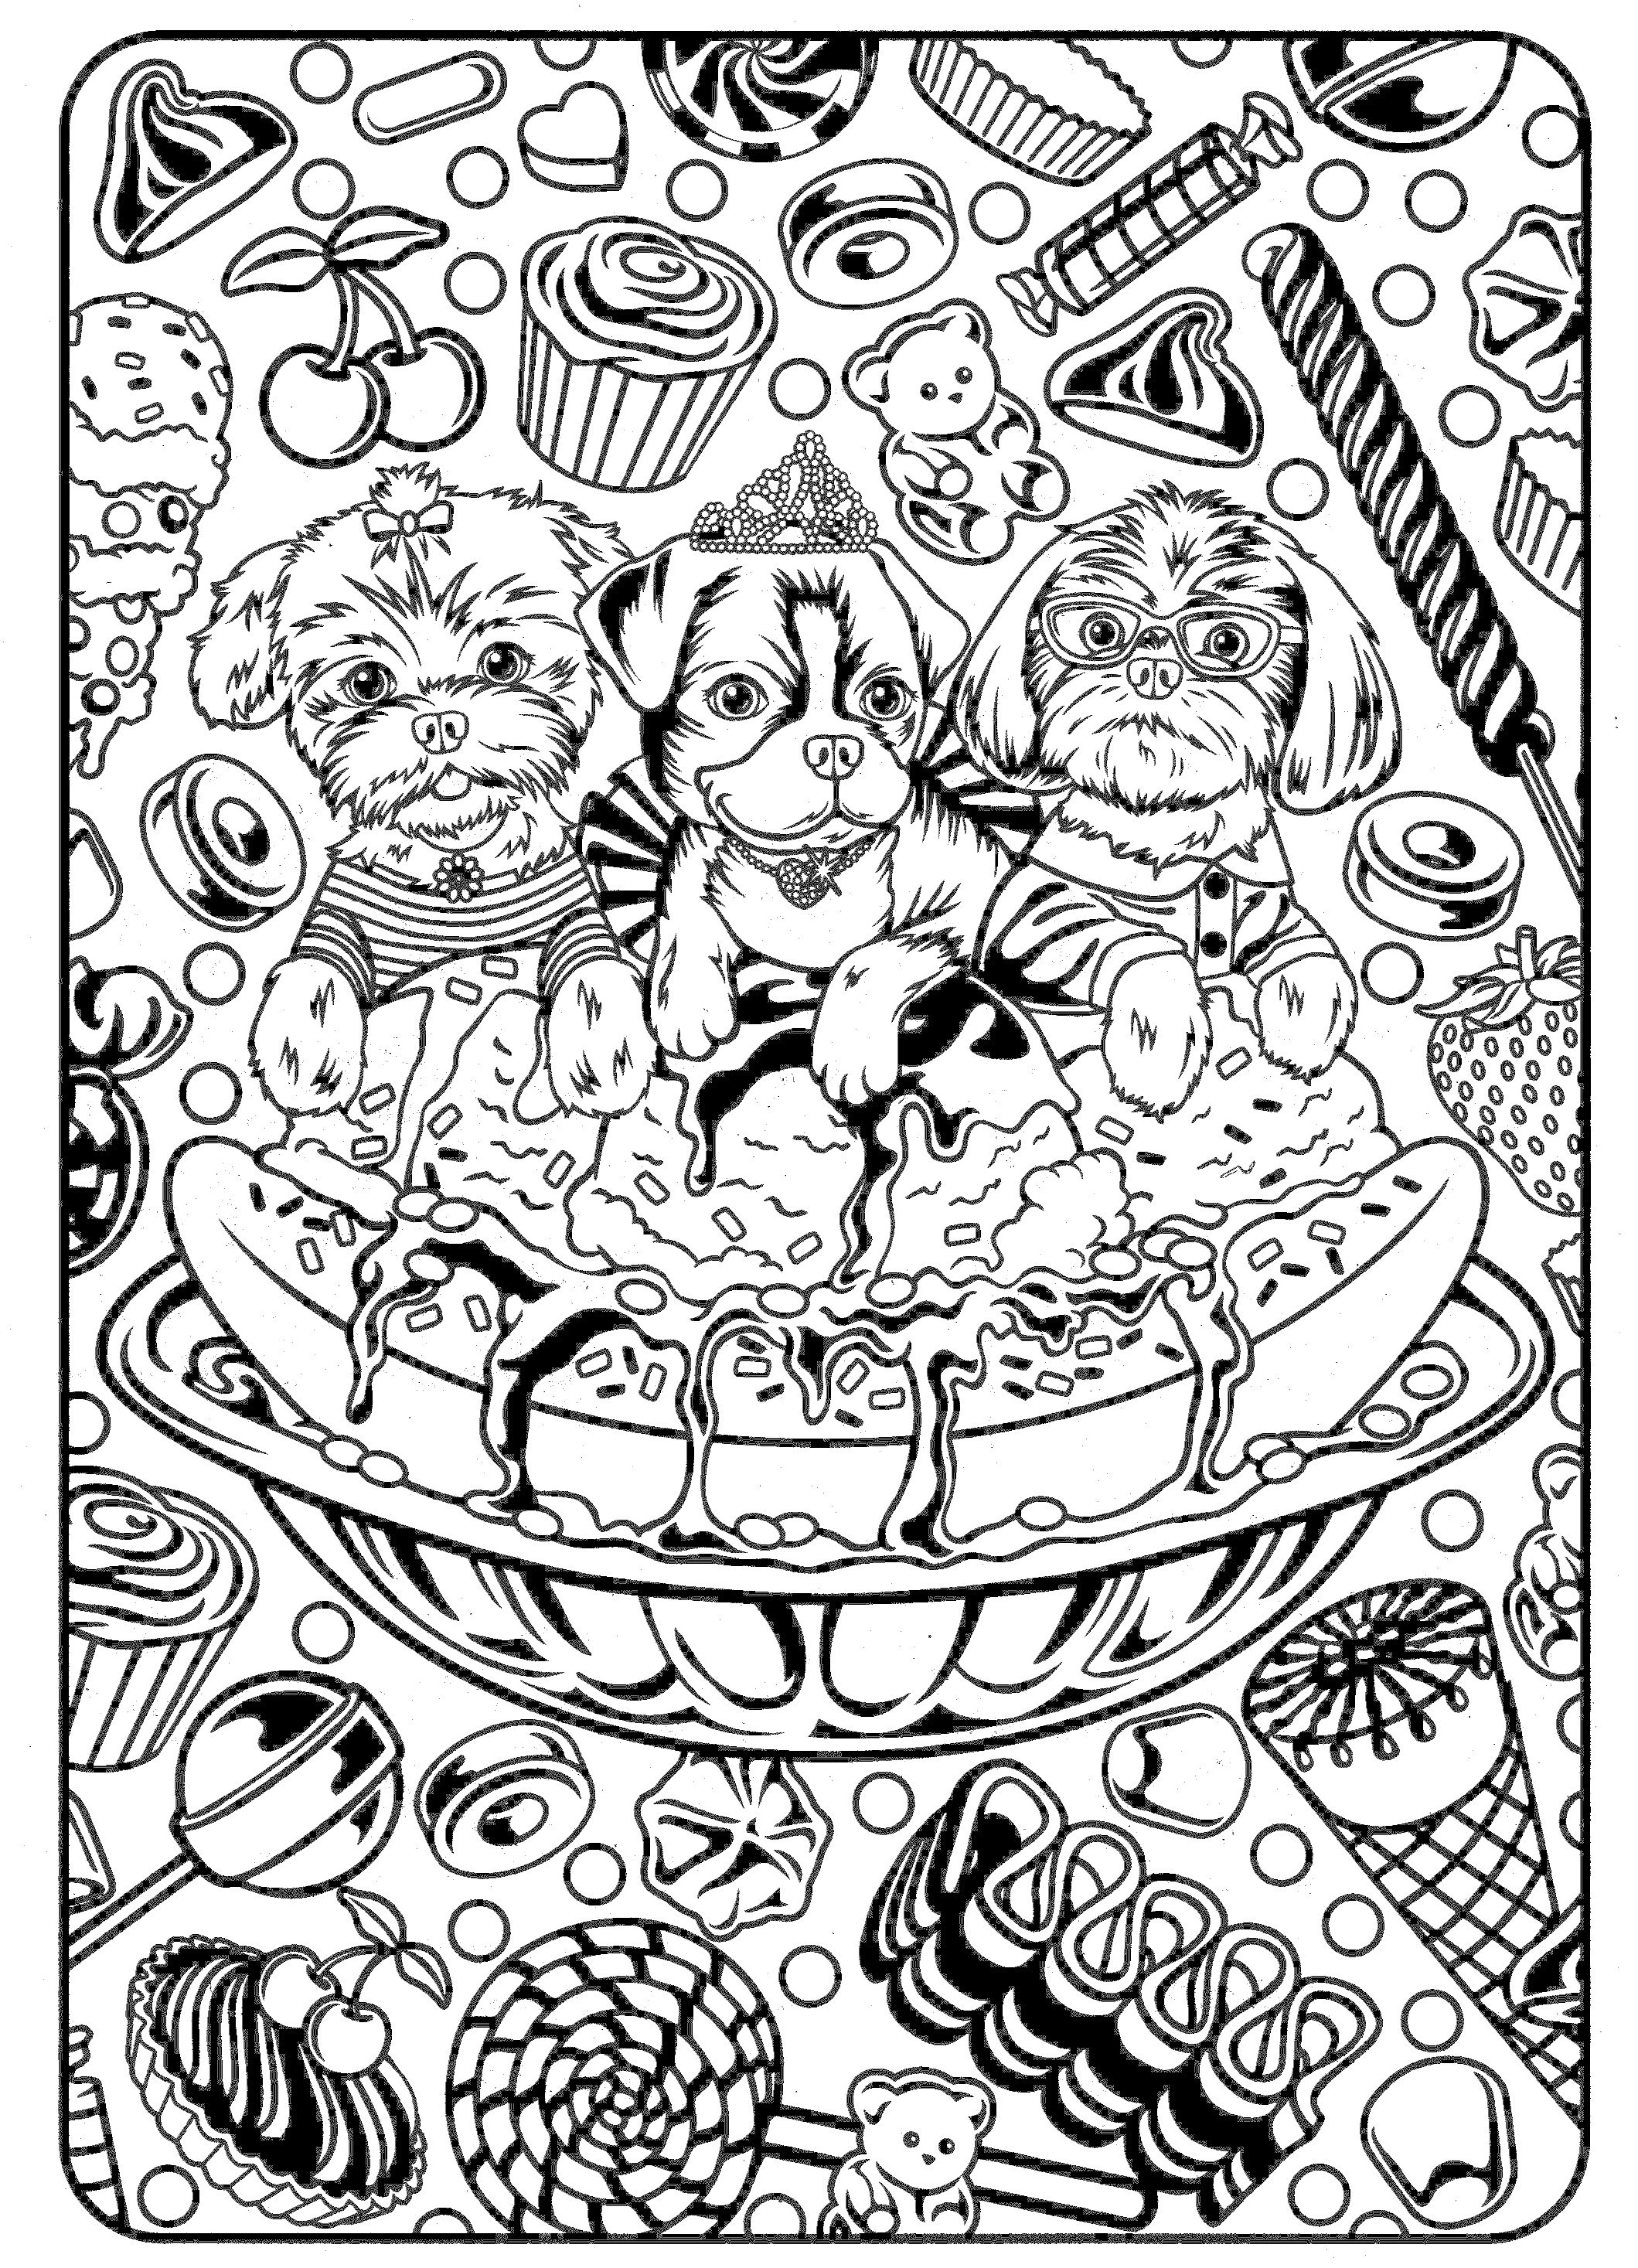 Coloring Pages To Color Online For Free Coloring Pages Online Free Printable Sailor Moon For Kids Page